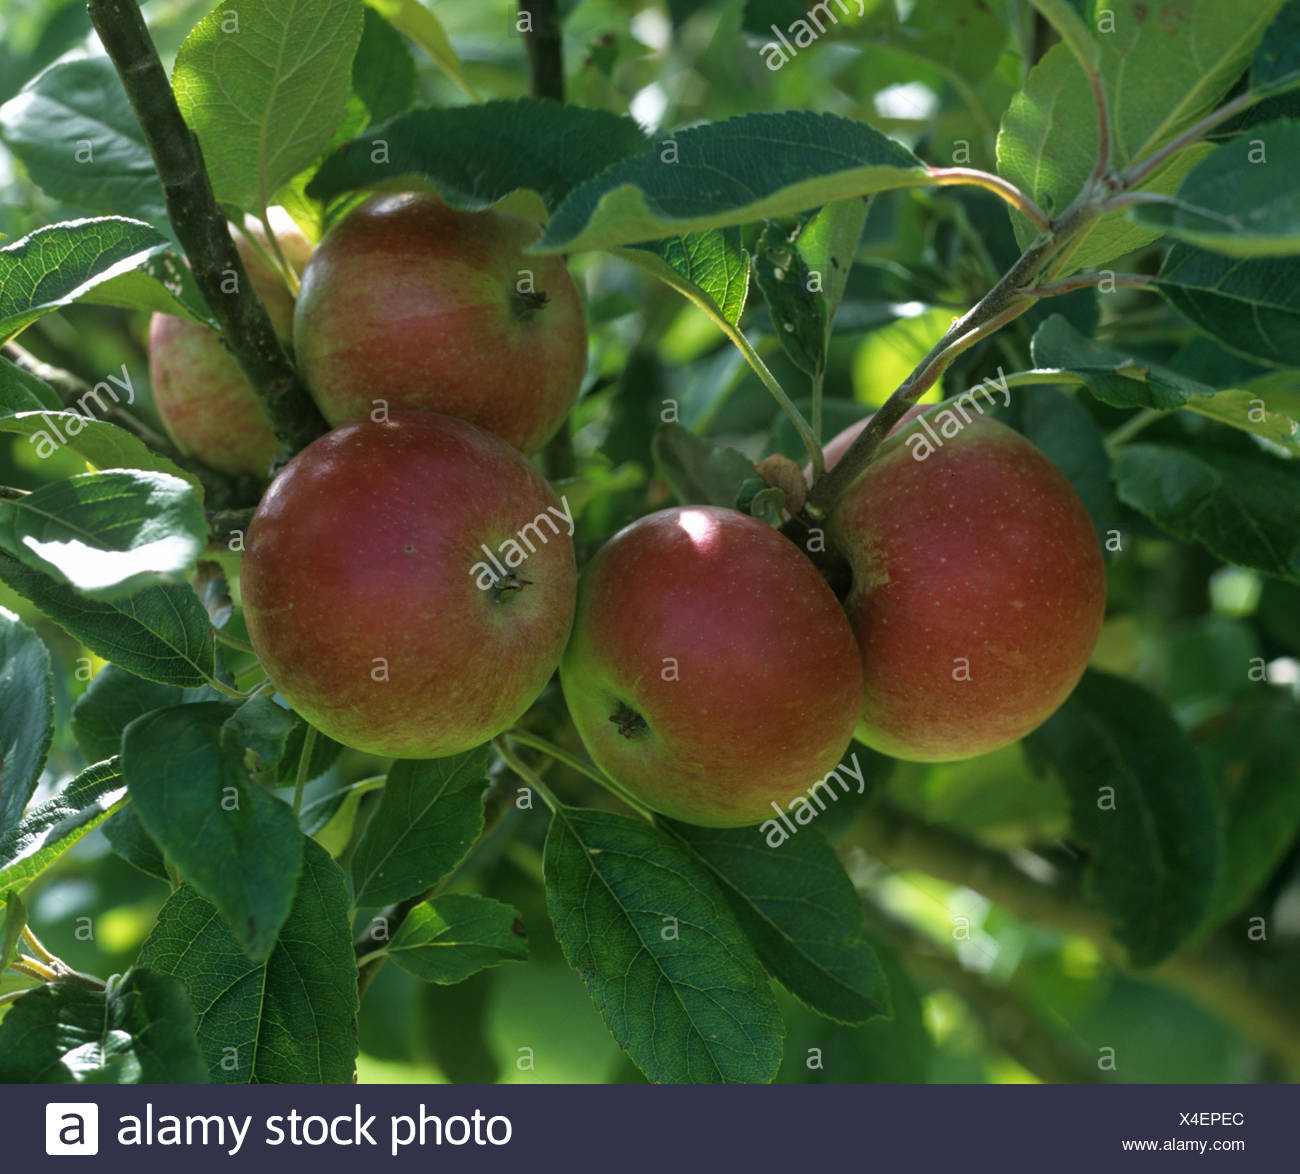 Mature apples on the tree, variety Discovery, Devon - Stock Image